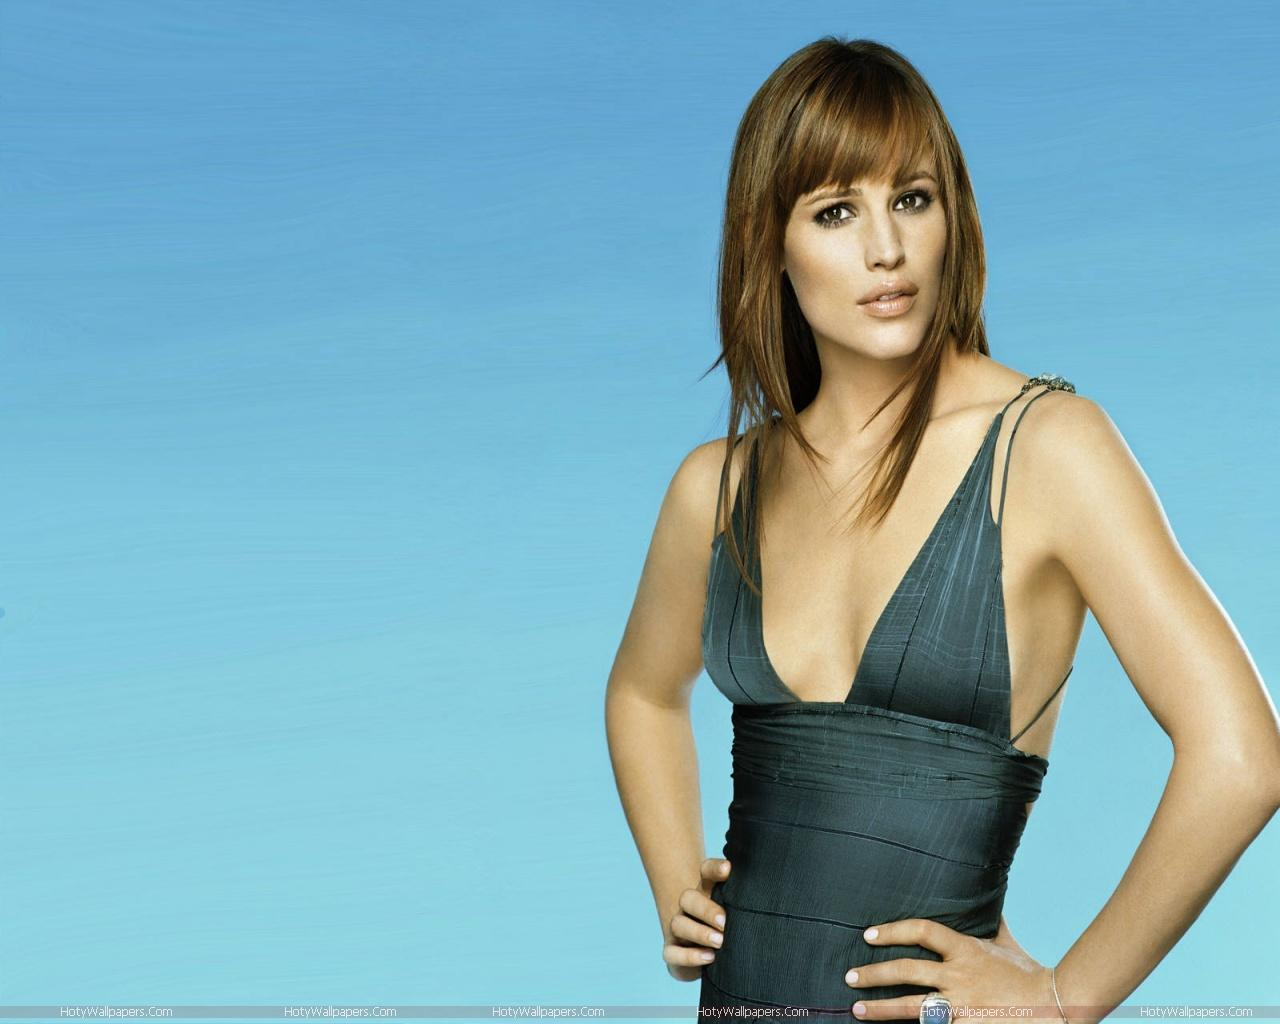 http://1.bp.blogspot.com/-5UwJeYugqCw/TmXtPzB6FBI/AAAAAAAAKcA/GmJsMDGuxOY/s1600/Hollywood_Actress_Jennifer_Garner_Wallpaper.jpg